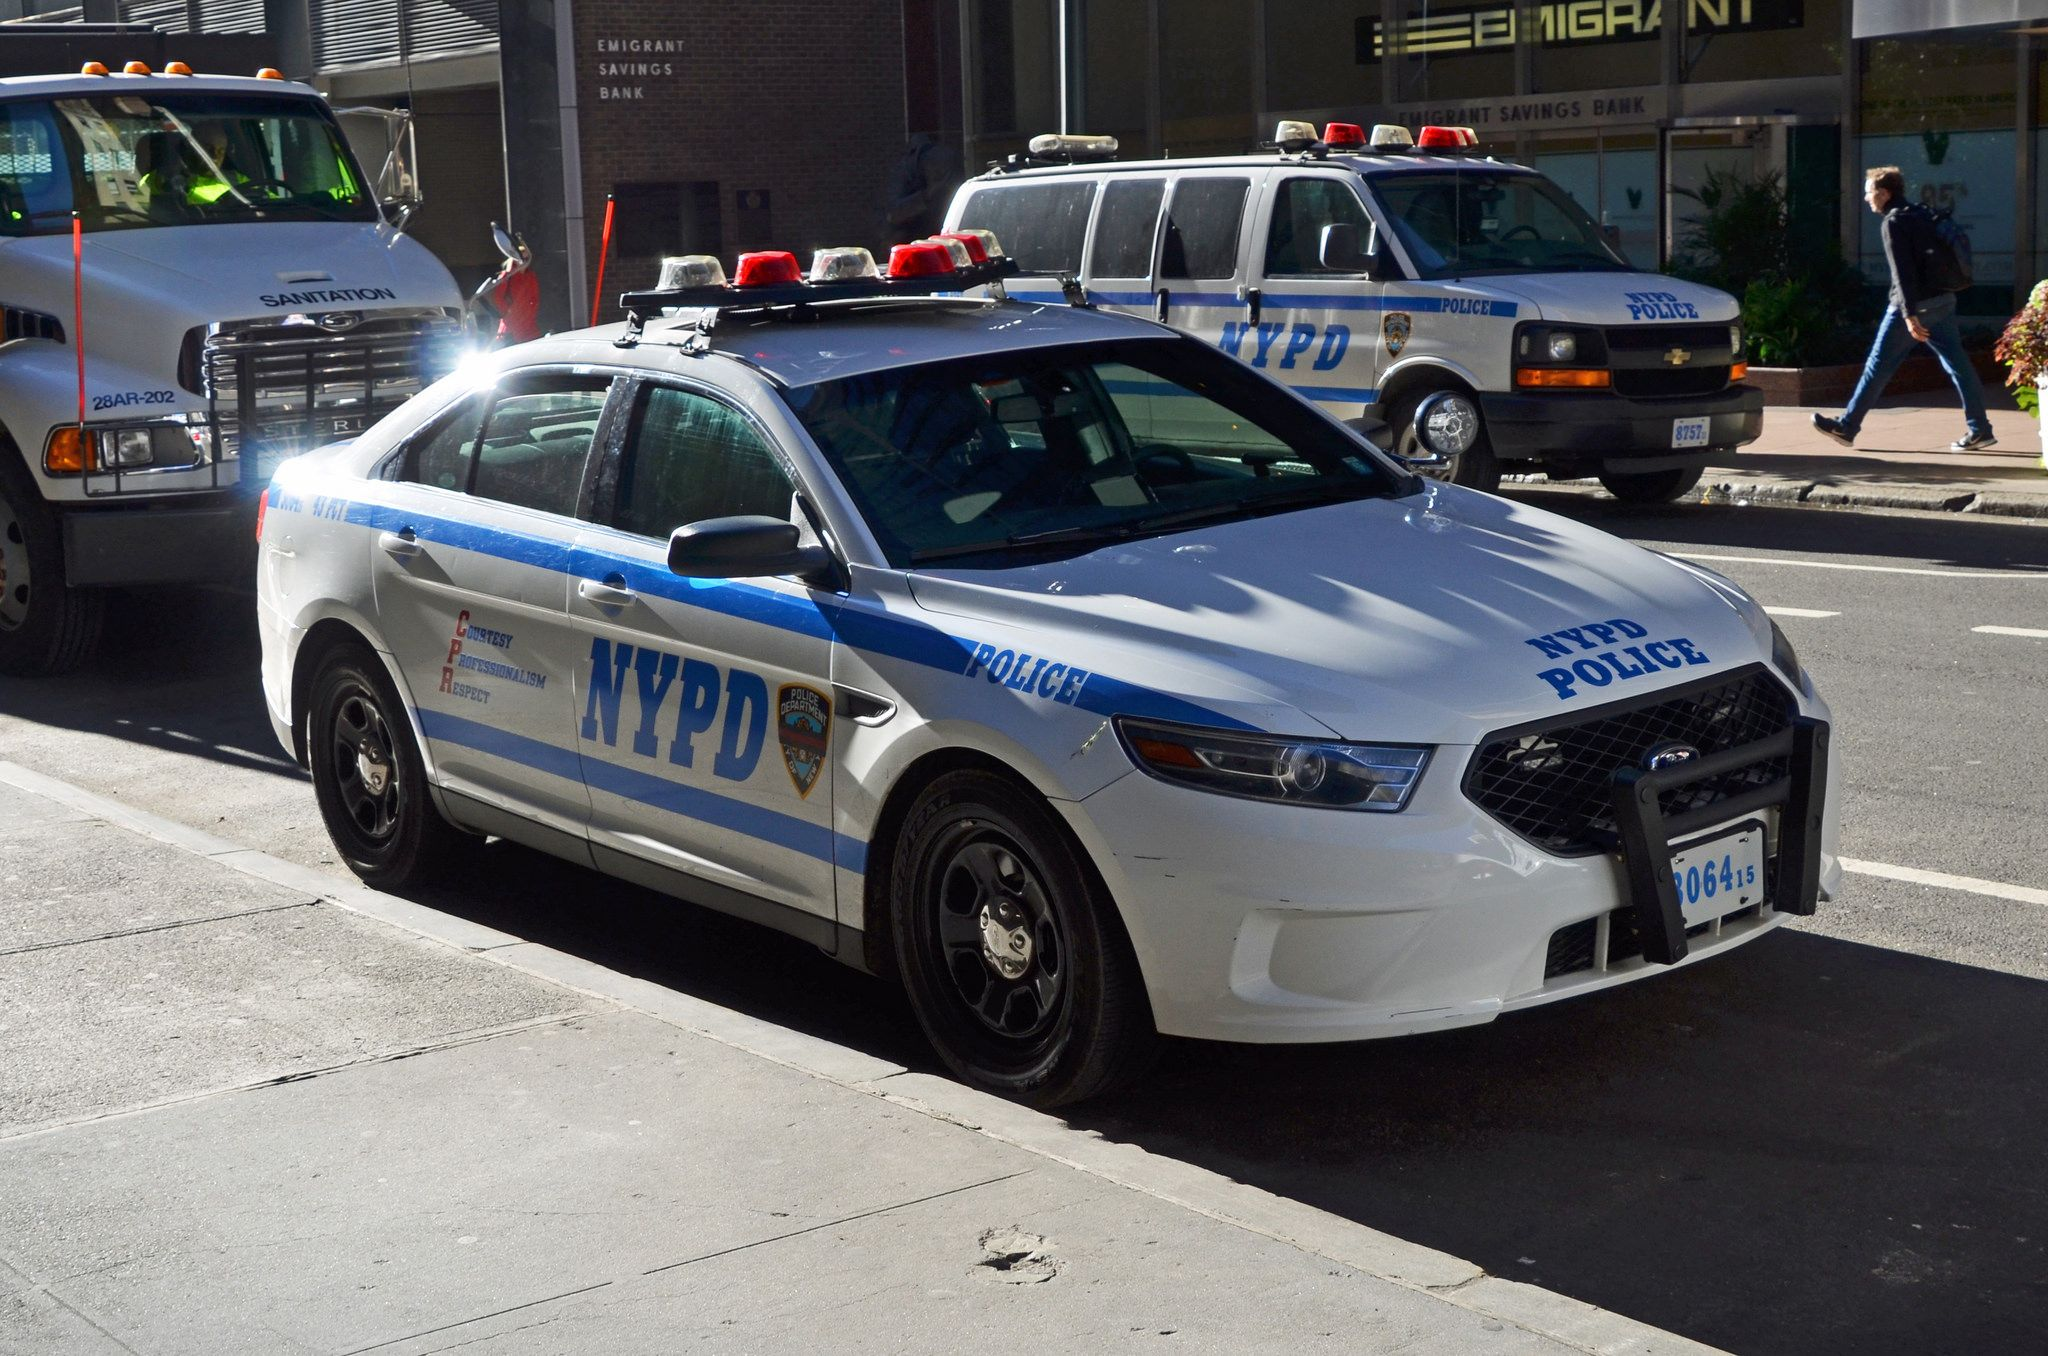 Nypd 43 Pct 3064 Us Police Car Nypd New York Police